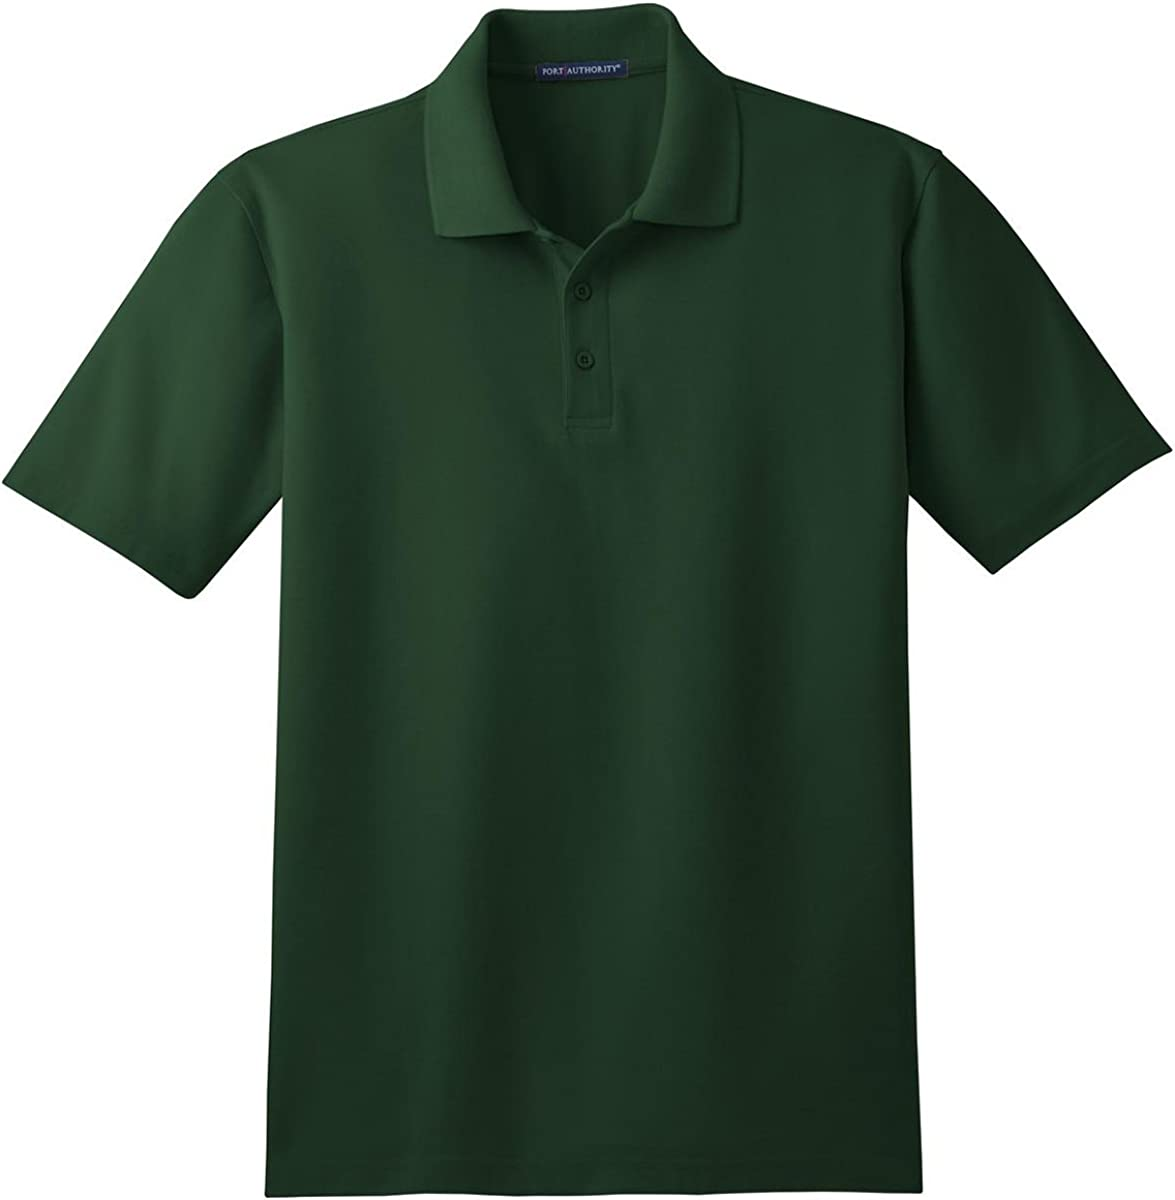 Port Authority Tall Stain-Resistant Polo. TLK510 Dark Green